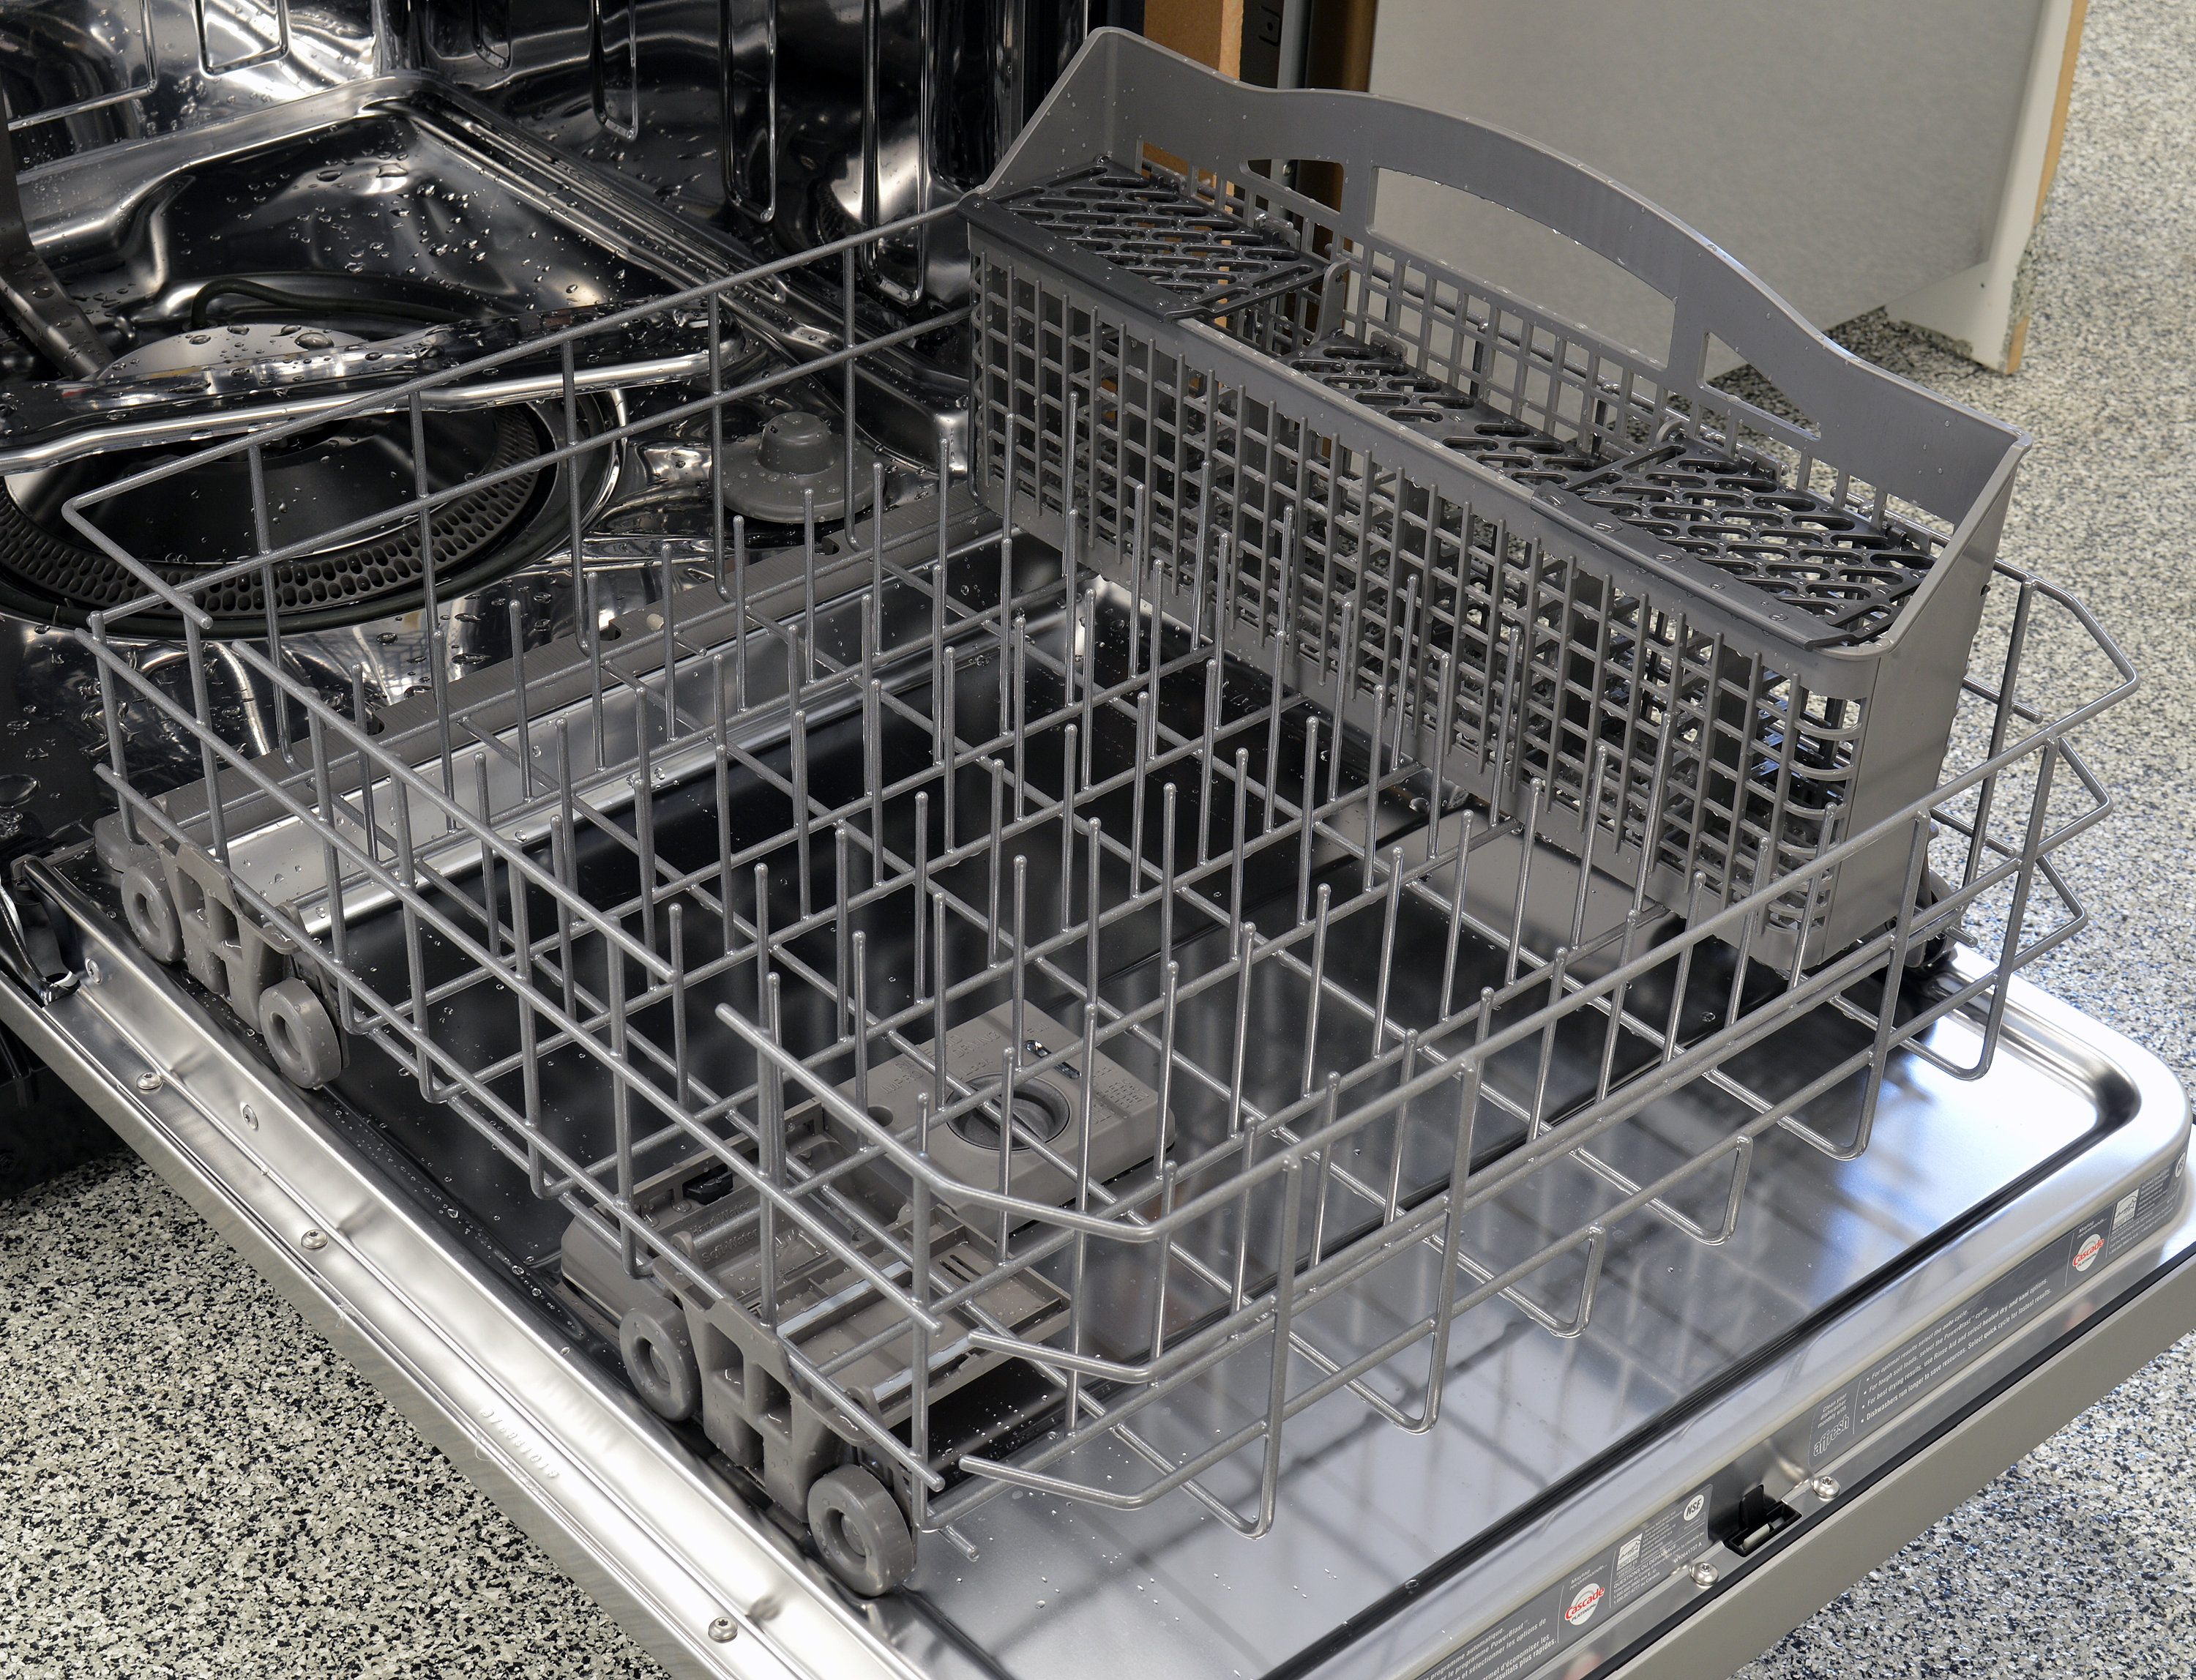 Maytag Mdb4949sdm Dishwasher Review Reviewed Com Dishwashers